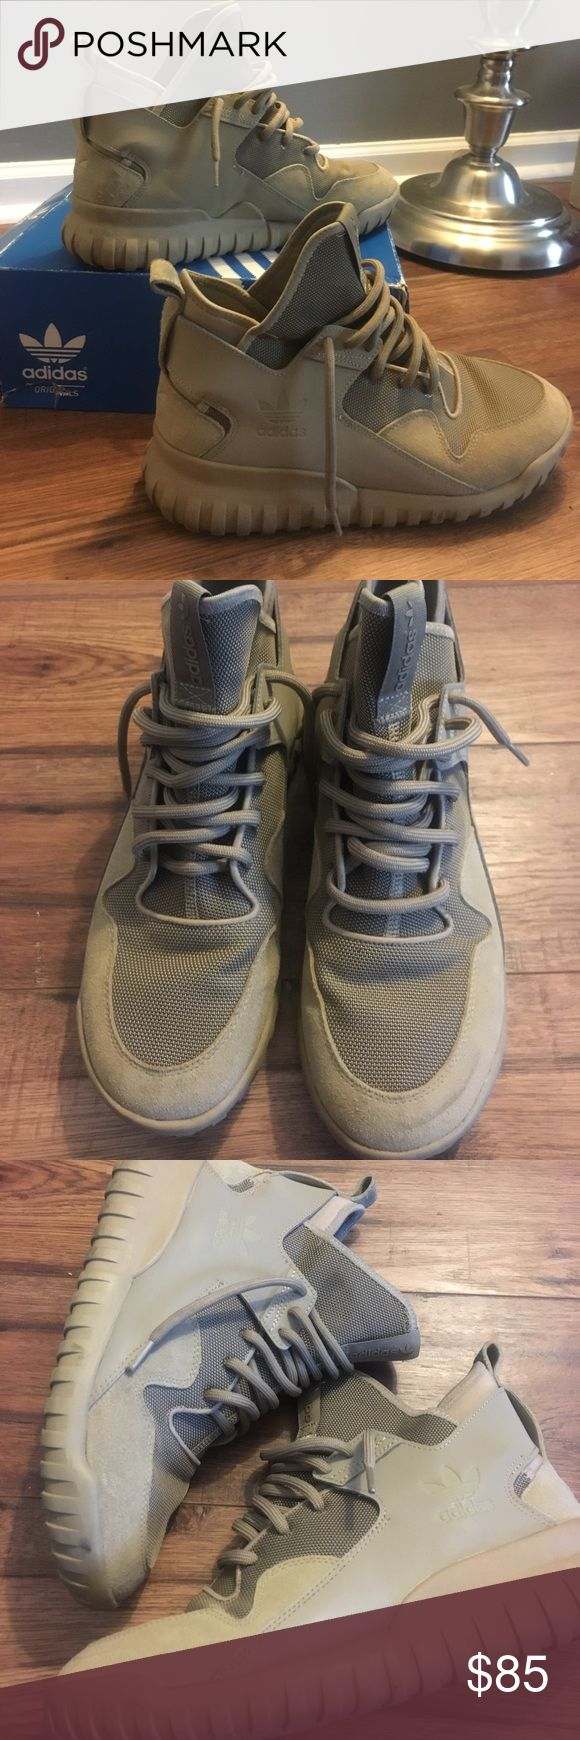 MENS ADIDAS SNEAKERS/BOOTS🌟 MENS ADIDAS TUBULAR X SNEAKERS/BOOTS🌟Worn only once! Excellent condition size 9.5. Retail $160 online Adidas Shoes Sneakers